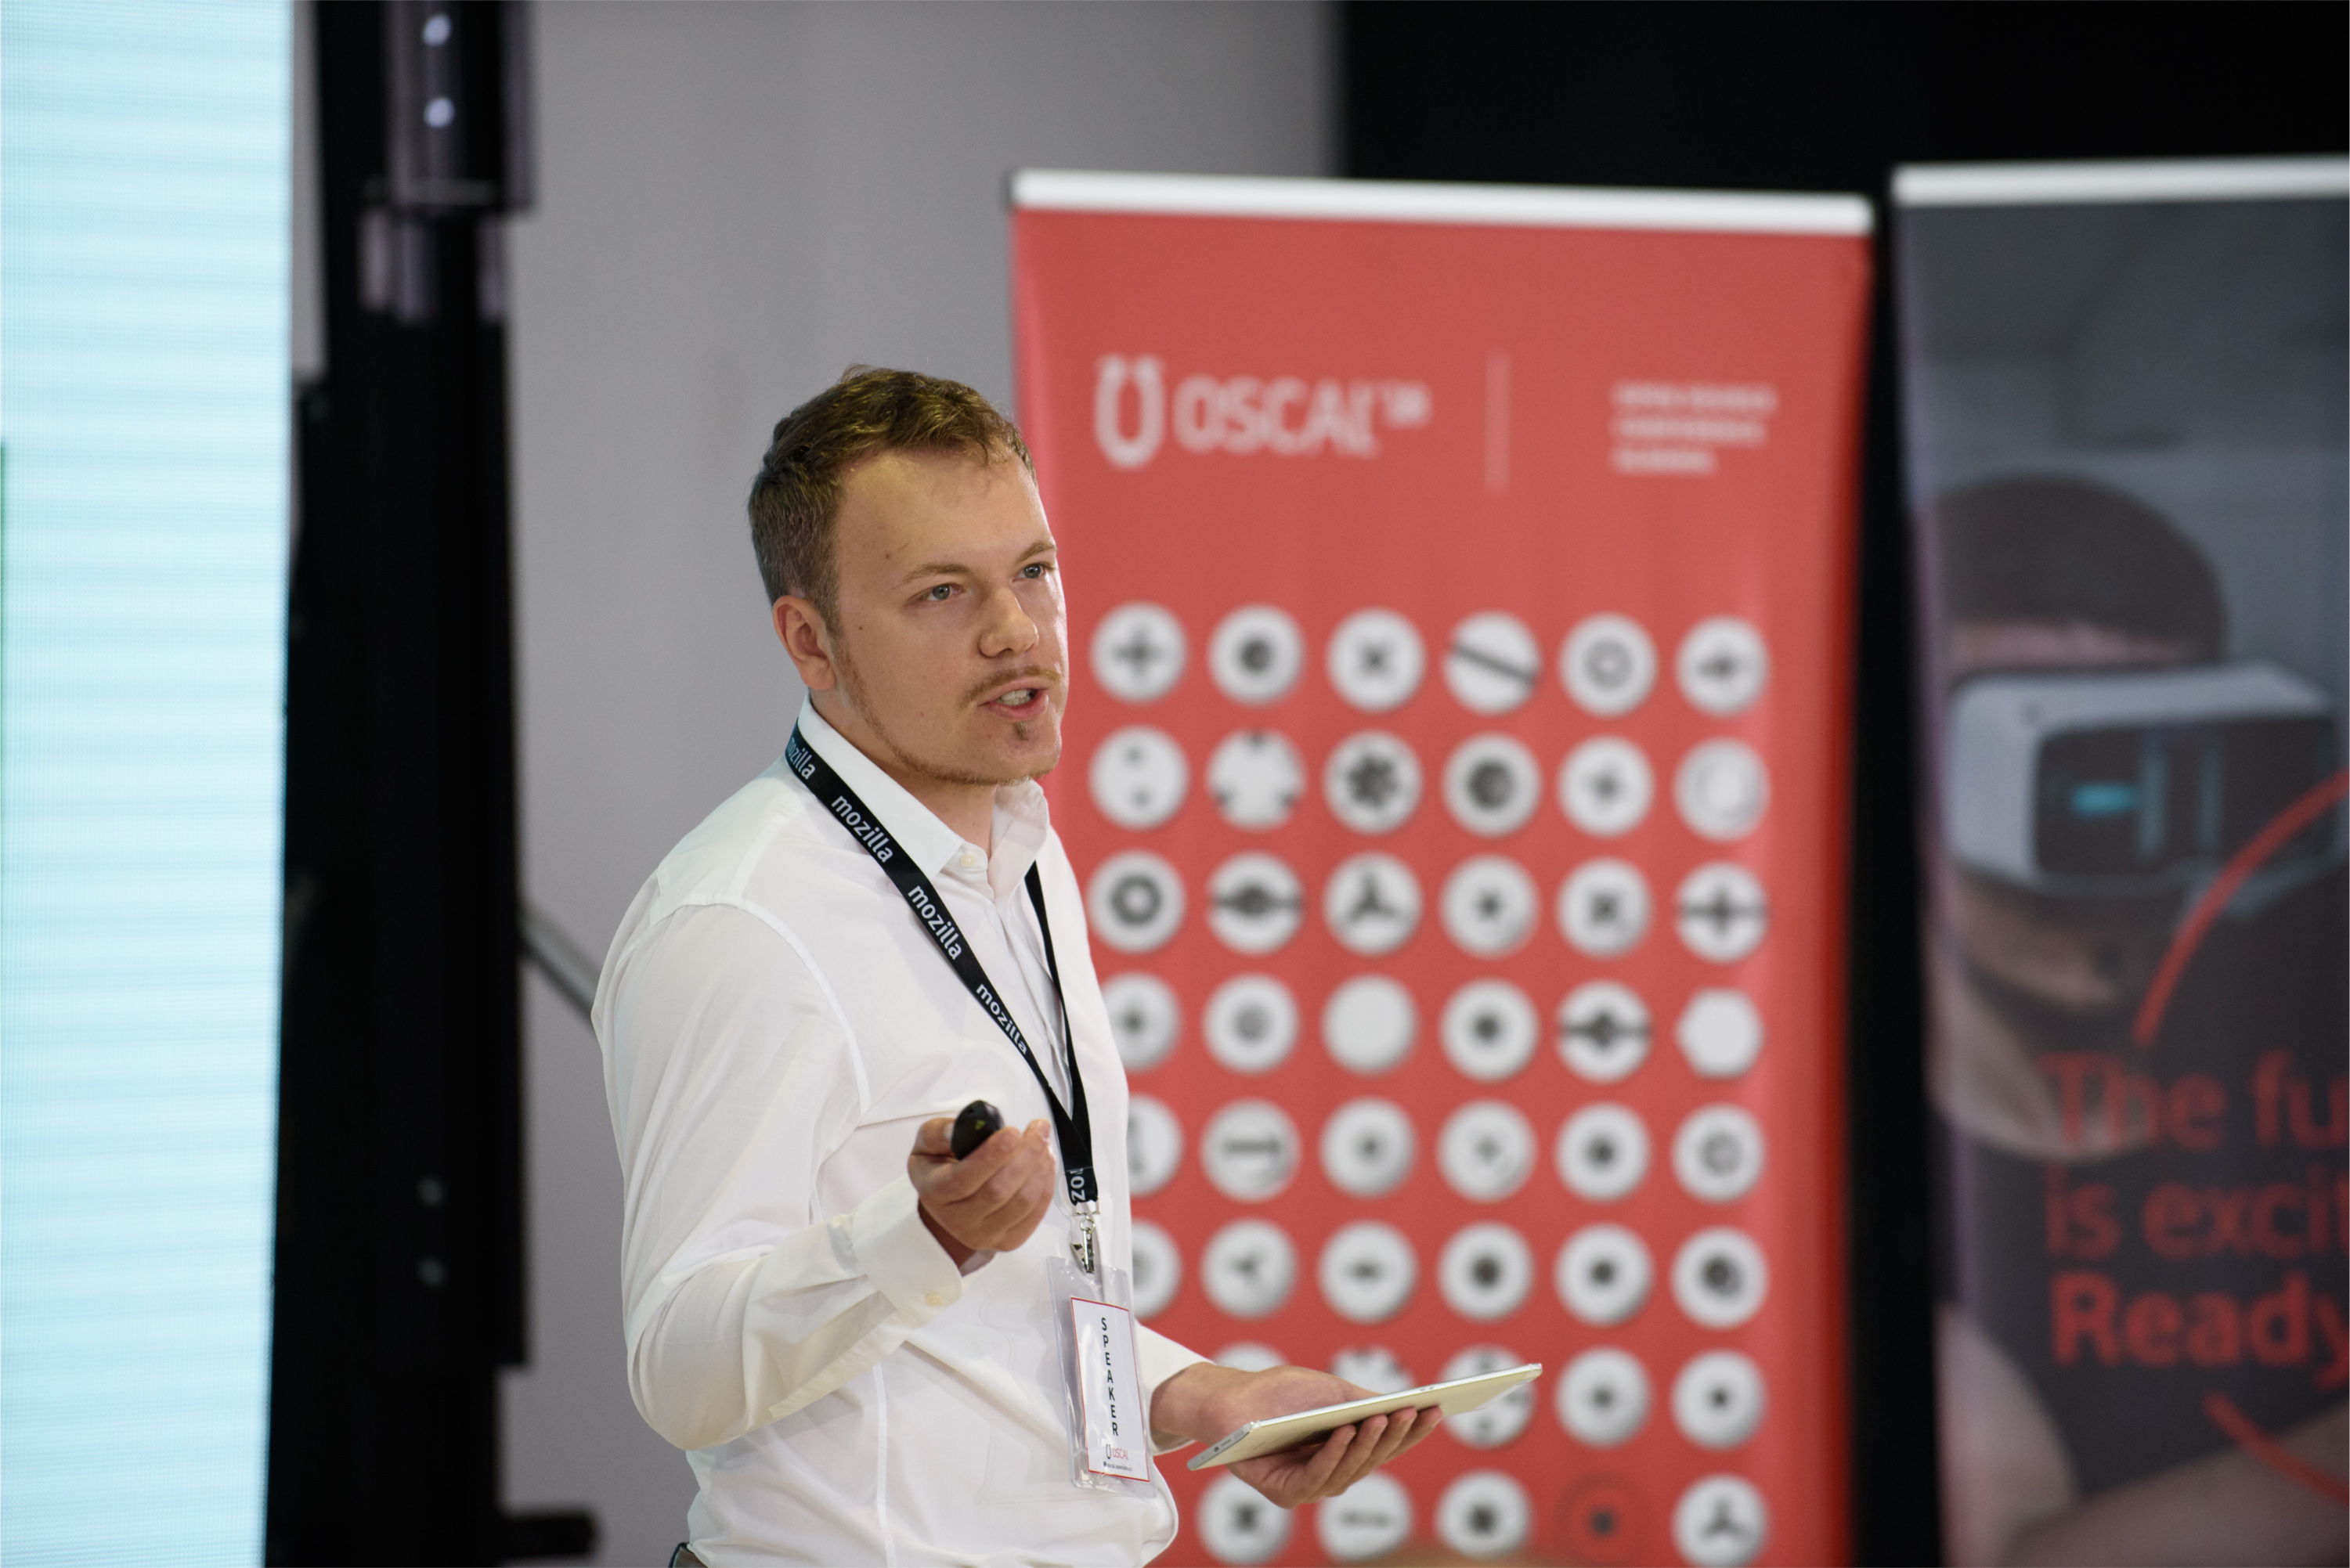 Sam Tuke presenting 'The Economics of Open Source at OSCAl 2018 conference